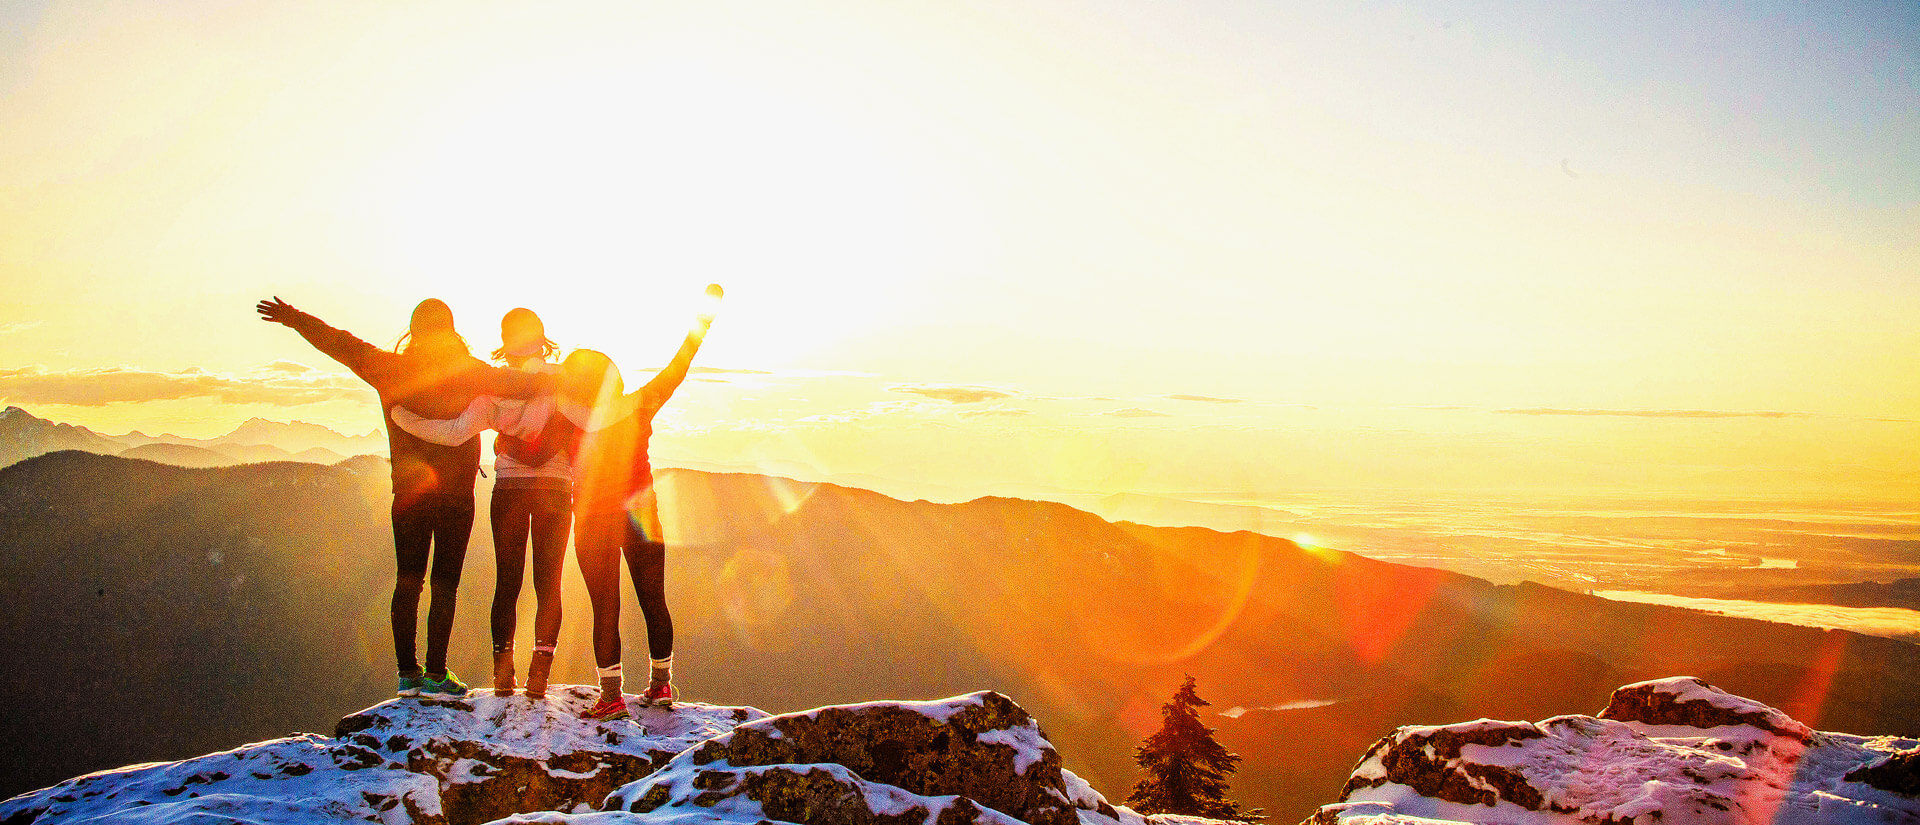 three young people standing at the top of a snow capped mountain at sunrise